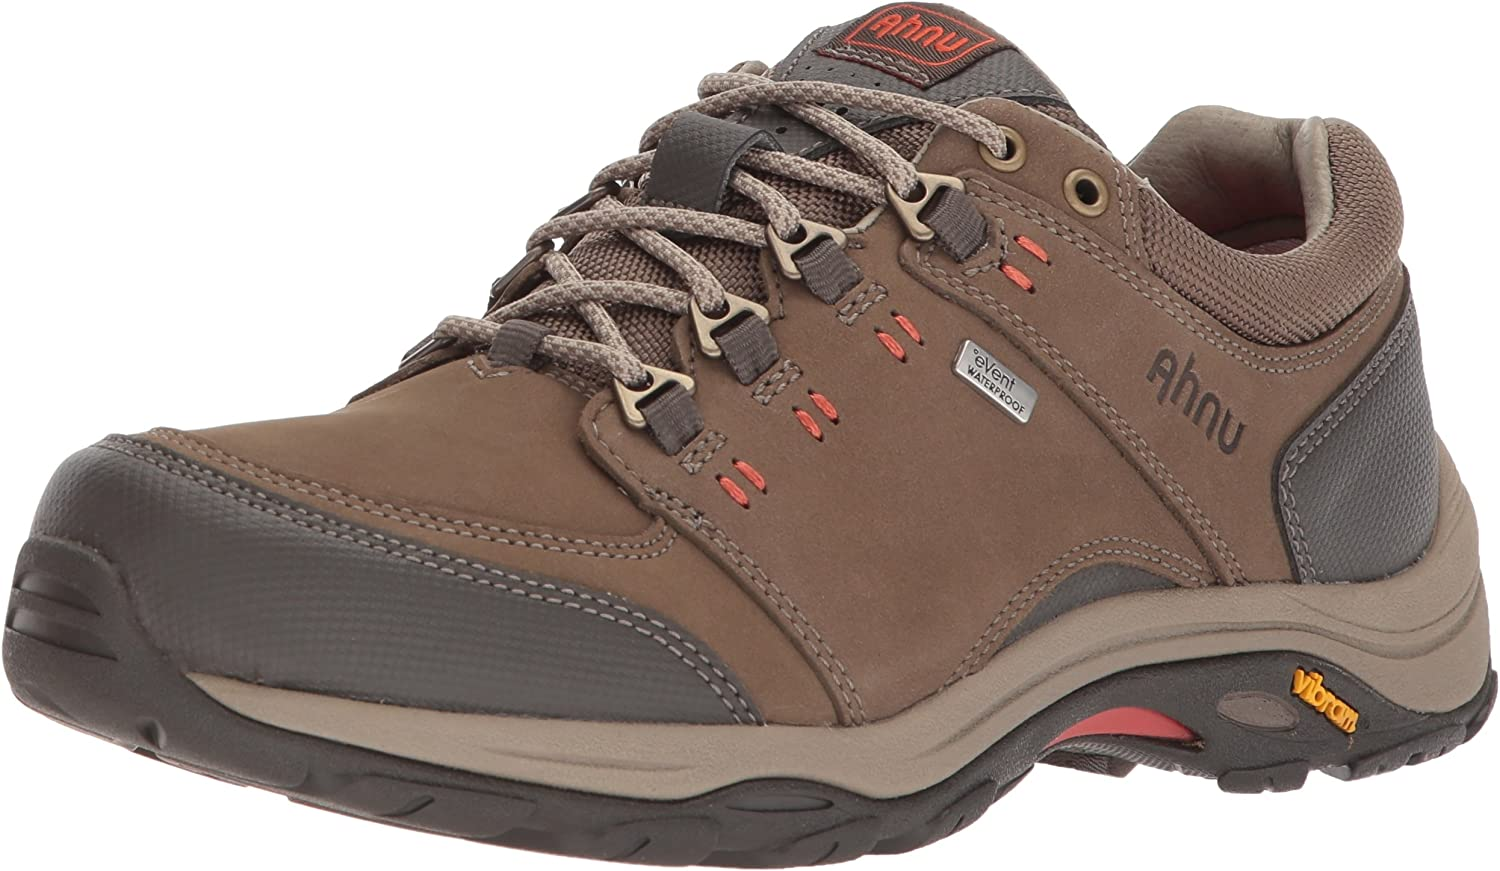 Ahnu Women's W Montara III Event Hiking Boot